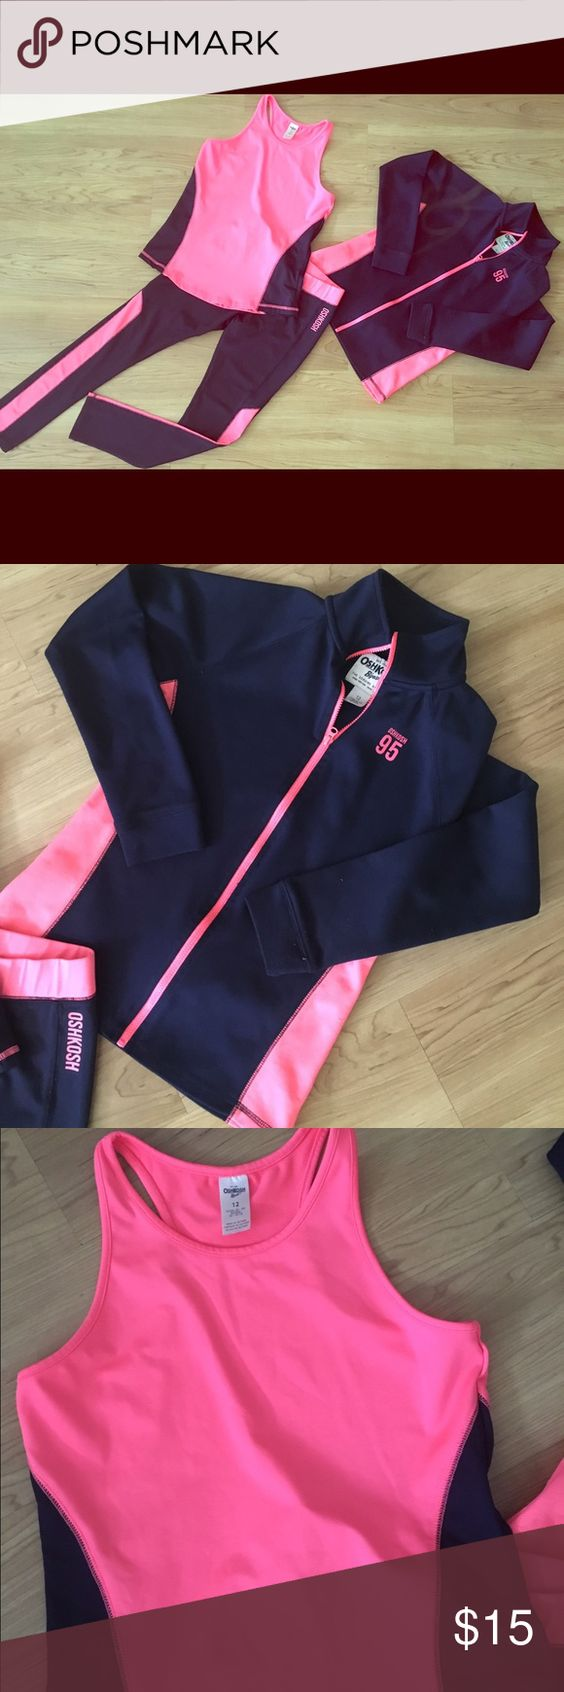 Oshkosh B'Gosh Girls 3 Piece Yoga Outfit Size 12 Super cute 3 piece athletic outfit Tank and pants are in great condition but jacket has quite a bit of wear, still cute though. Children's Size 12 Colors- Navy and Melon Oshkosh B'gosh Other